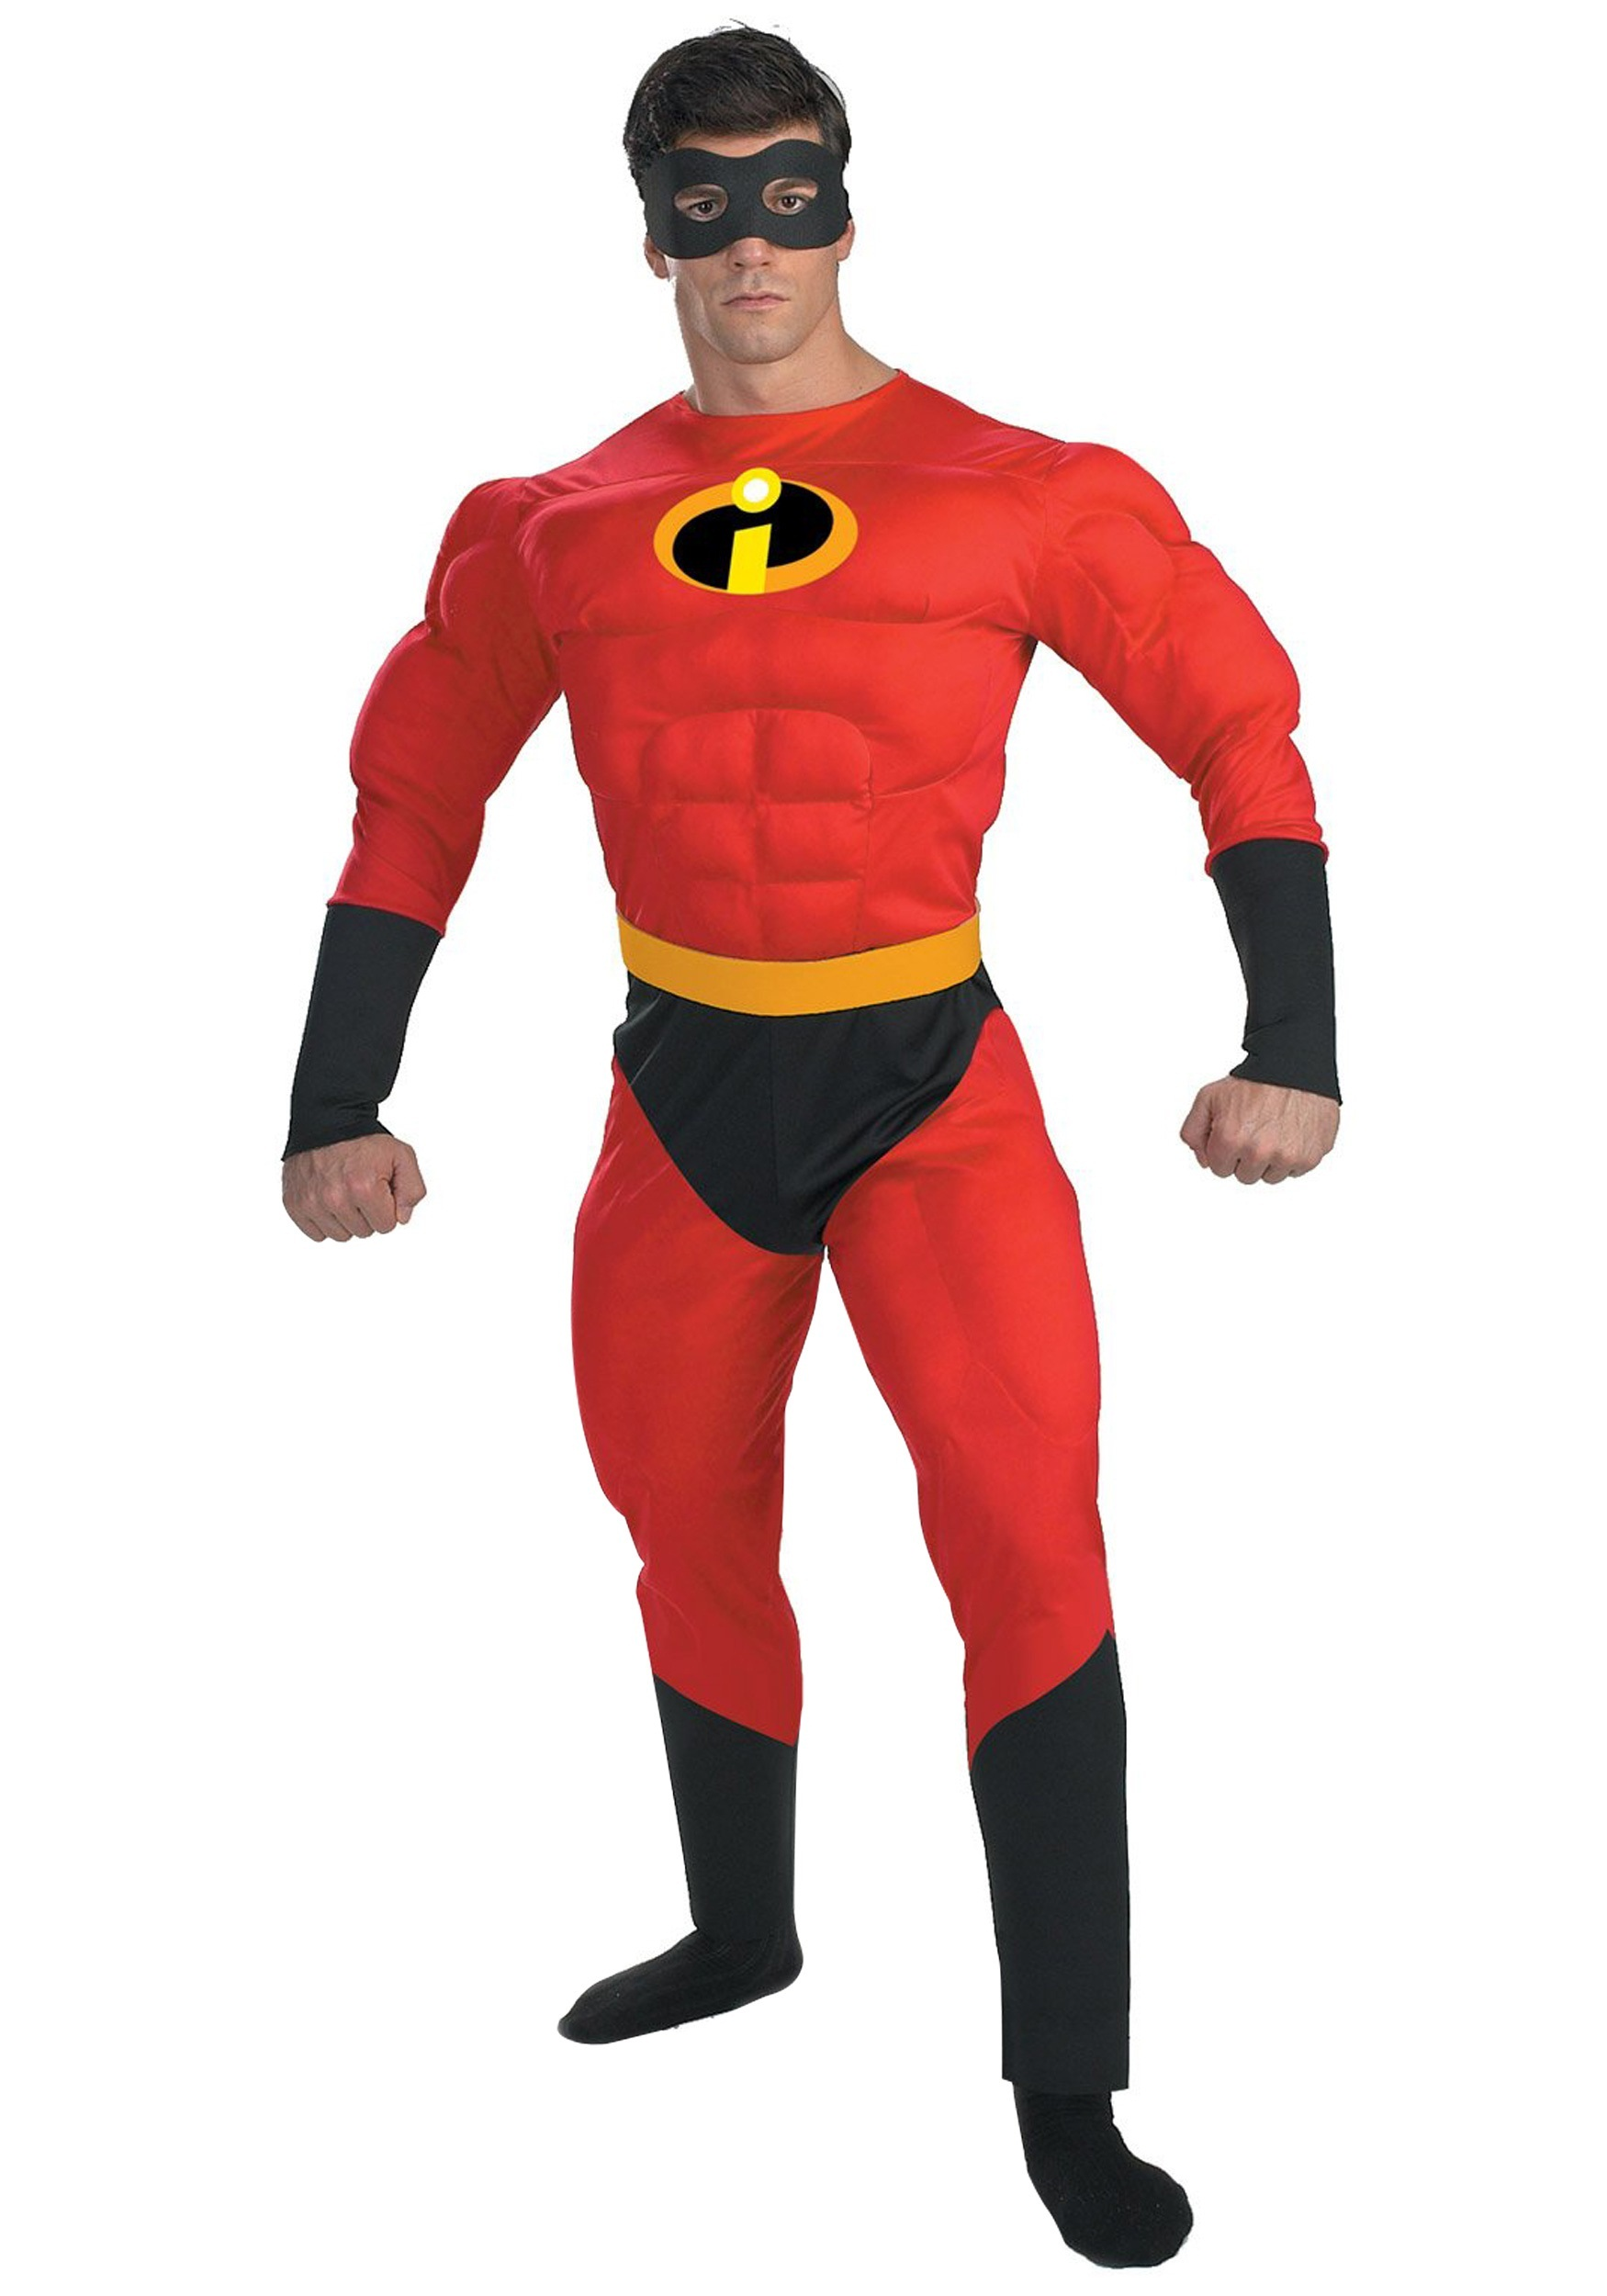 Mr. Incredible Deluxe Muscle Plus Size Costume 2X